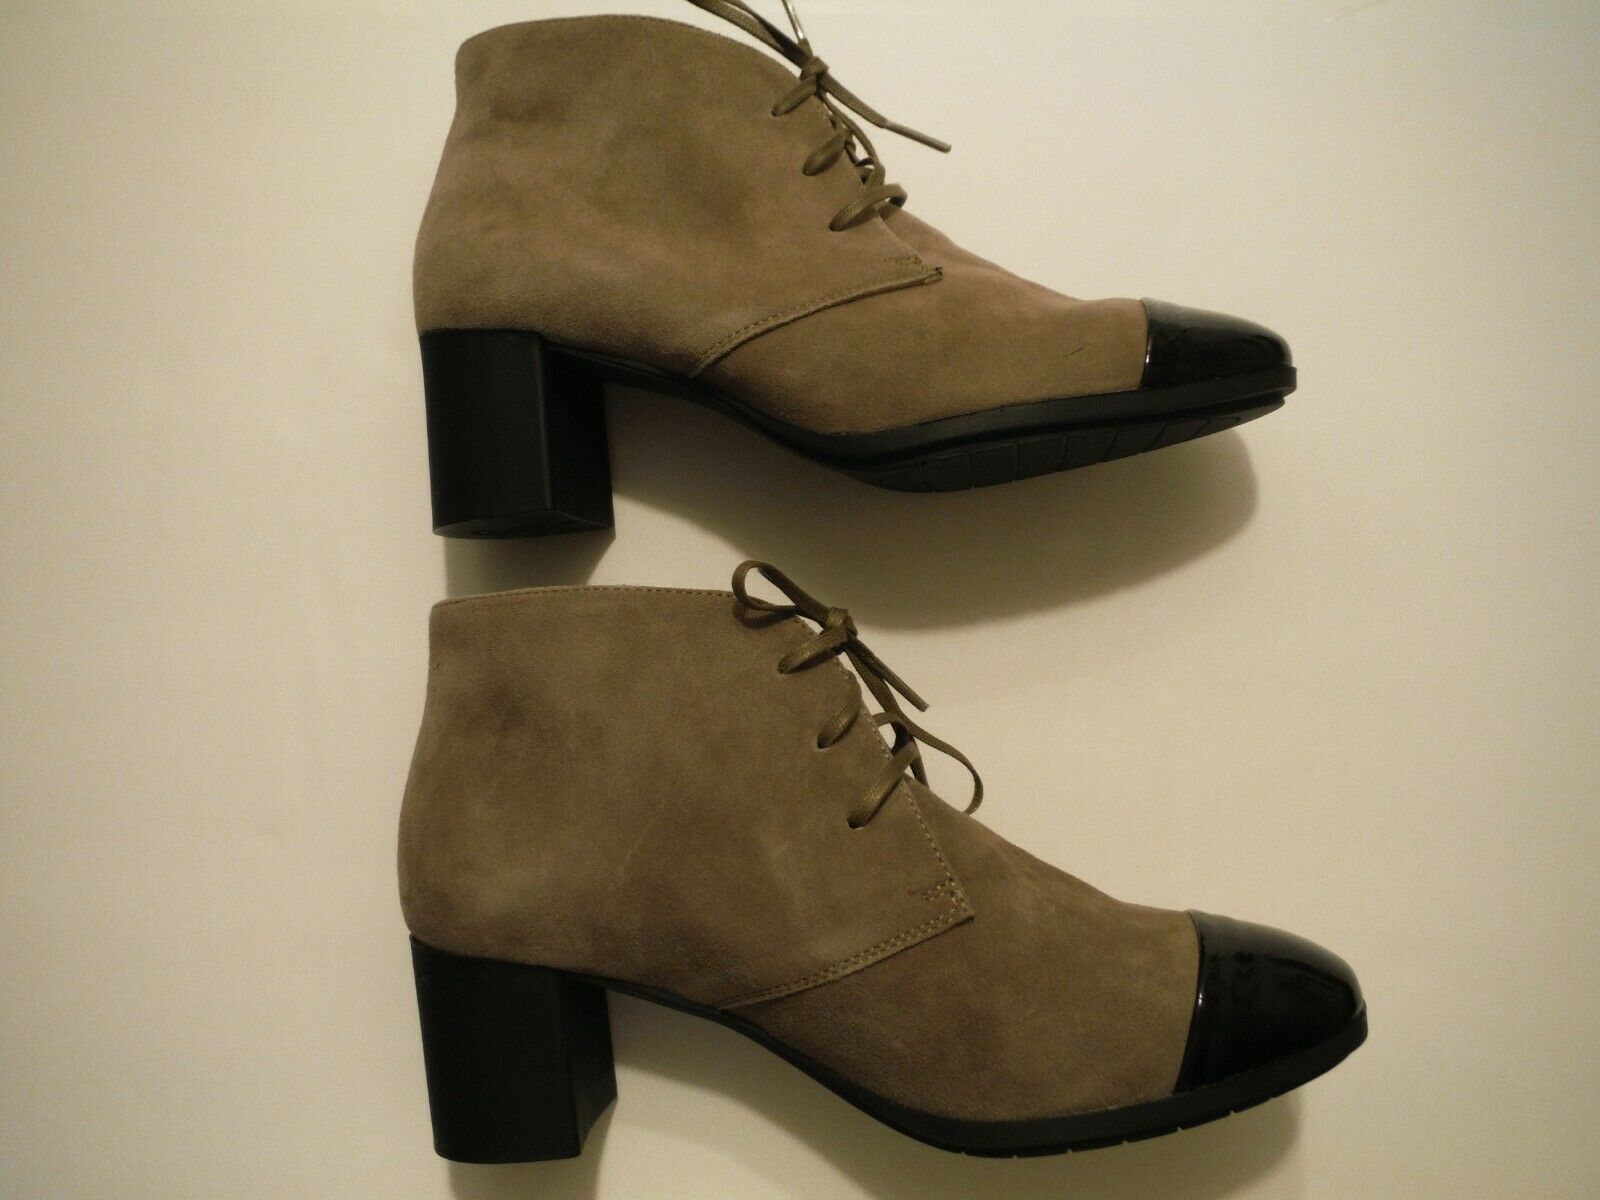 SABRINAS EU SIZE 37 US 6 - - - 6 1 2 TAUPE SUEDE ANKLE BOOT BOOTIE BLACK PATENT TOE 01a1ae